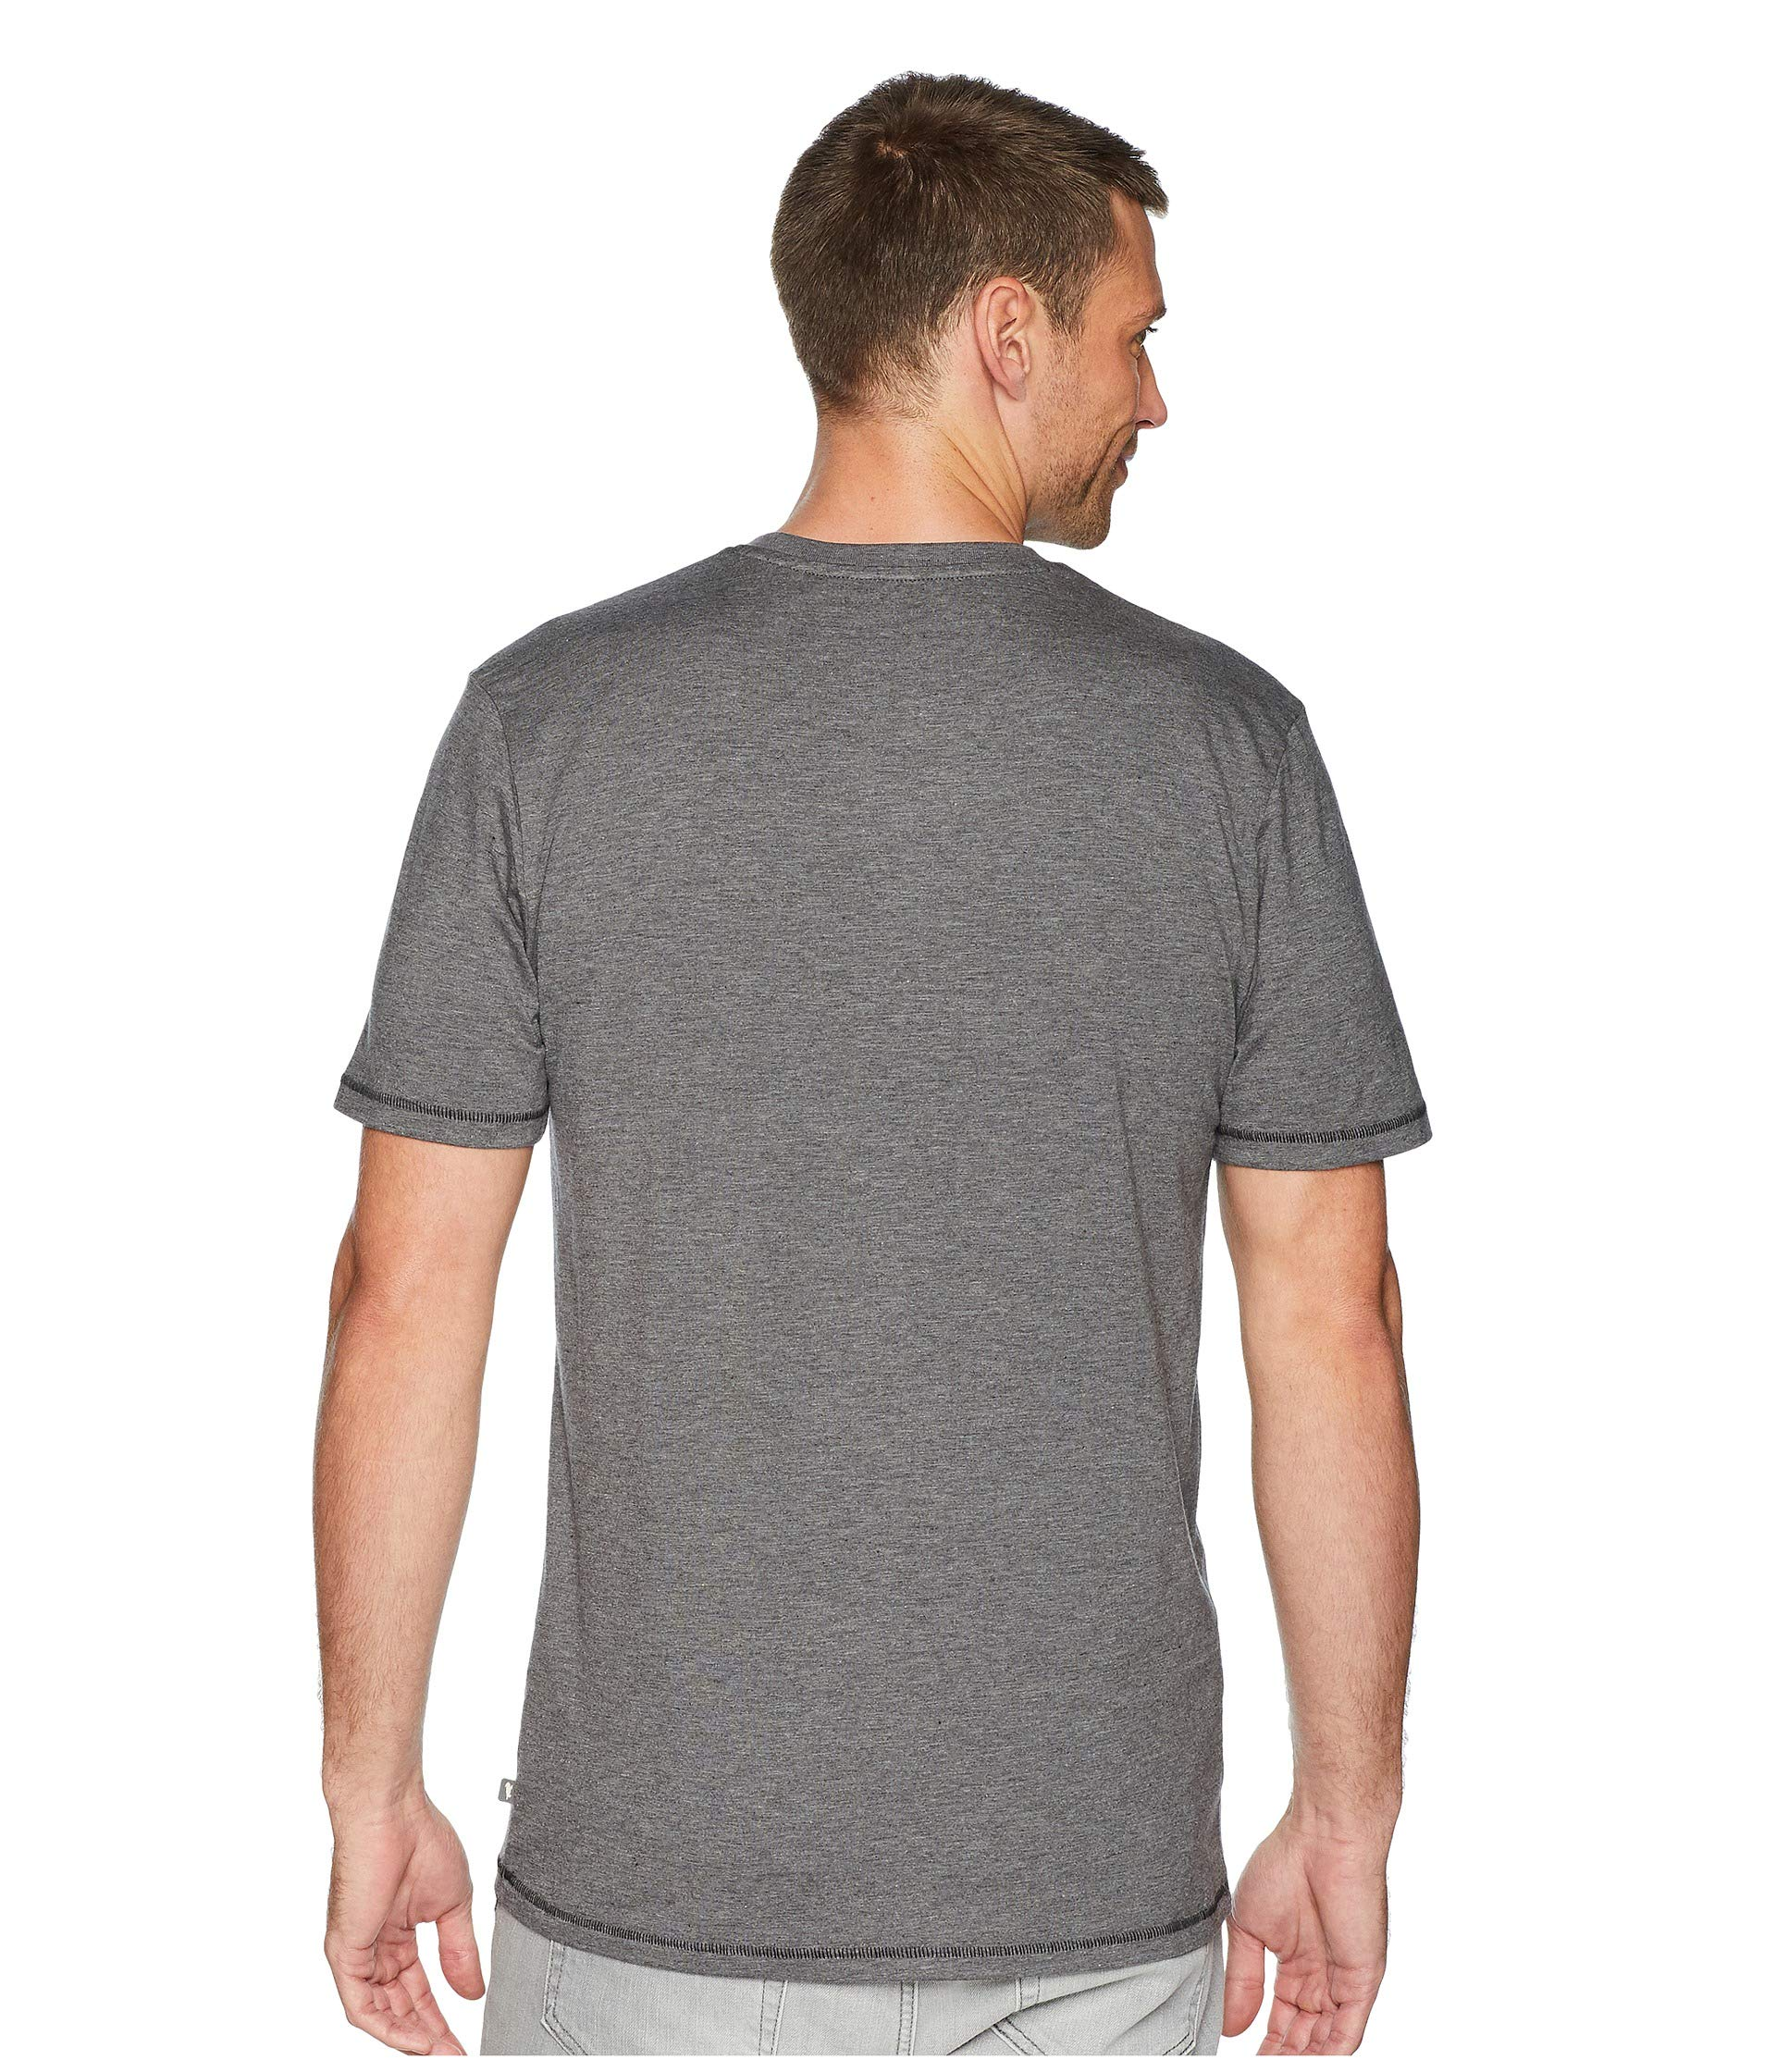 Sleeve Heather Toad Tempo amp;co Charcoal Crew Slim Short 4w1tFqw